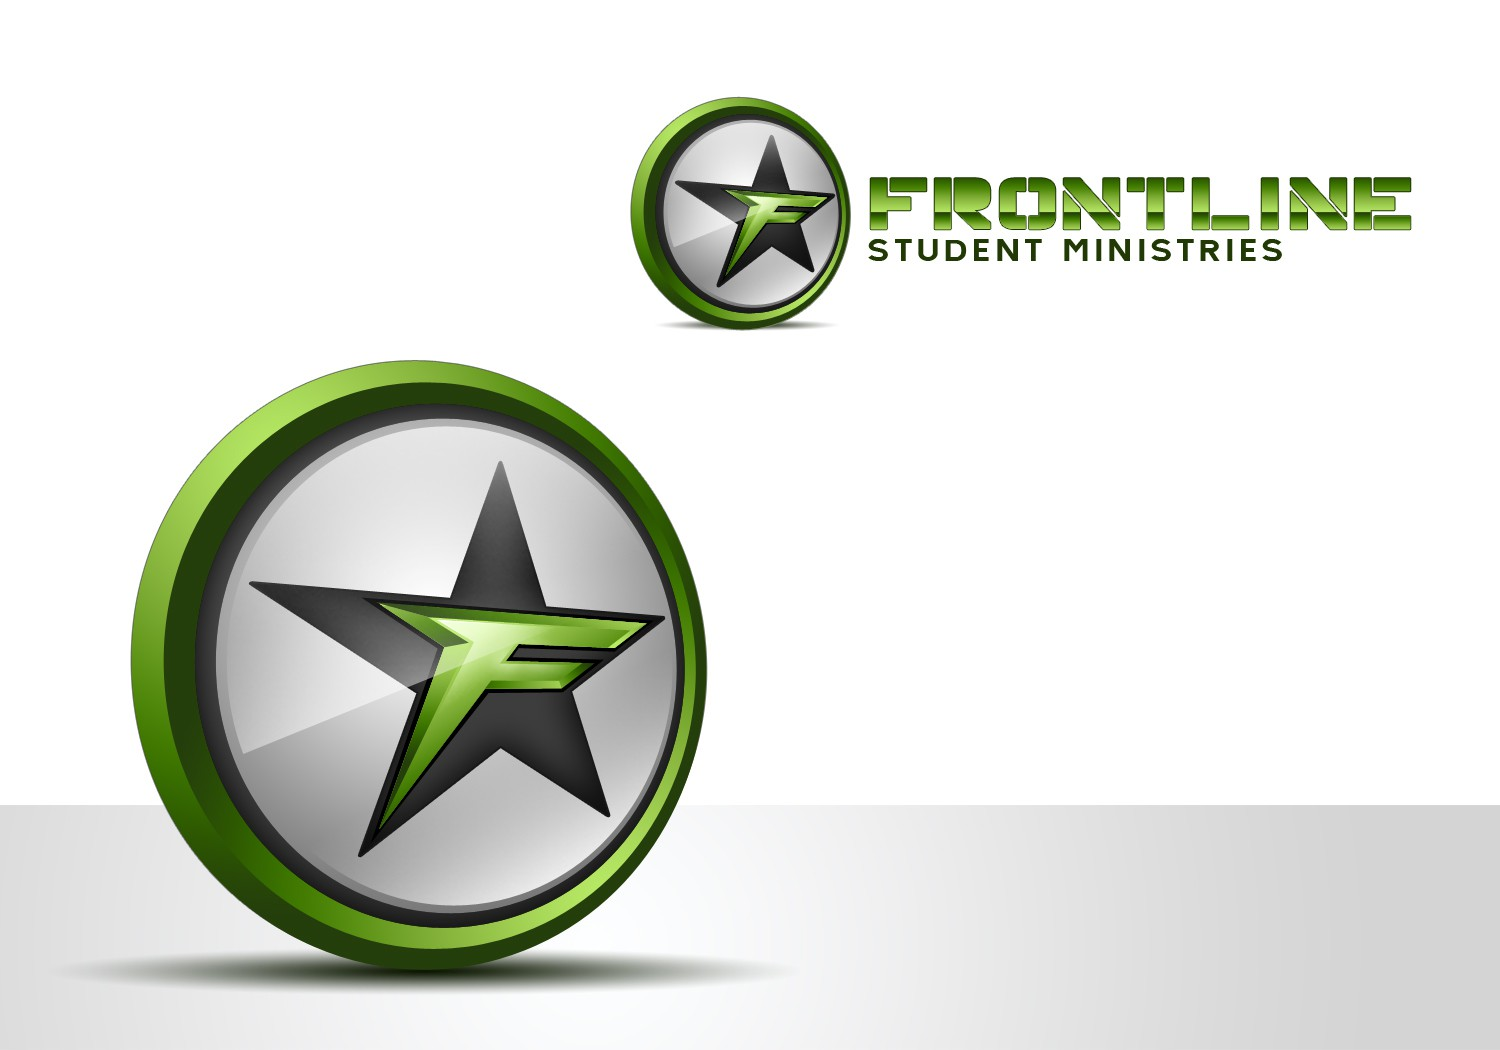 Front Line Student Ministries needs a new 3D logo